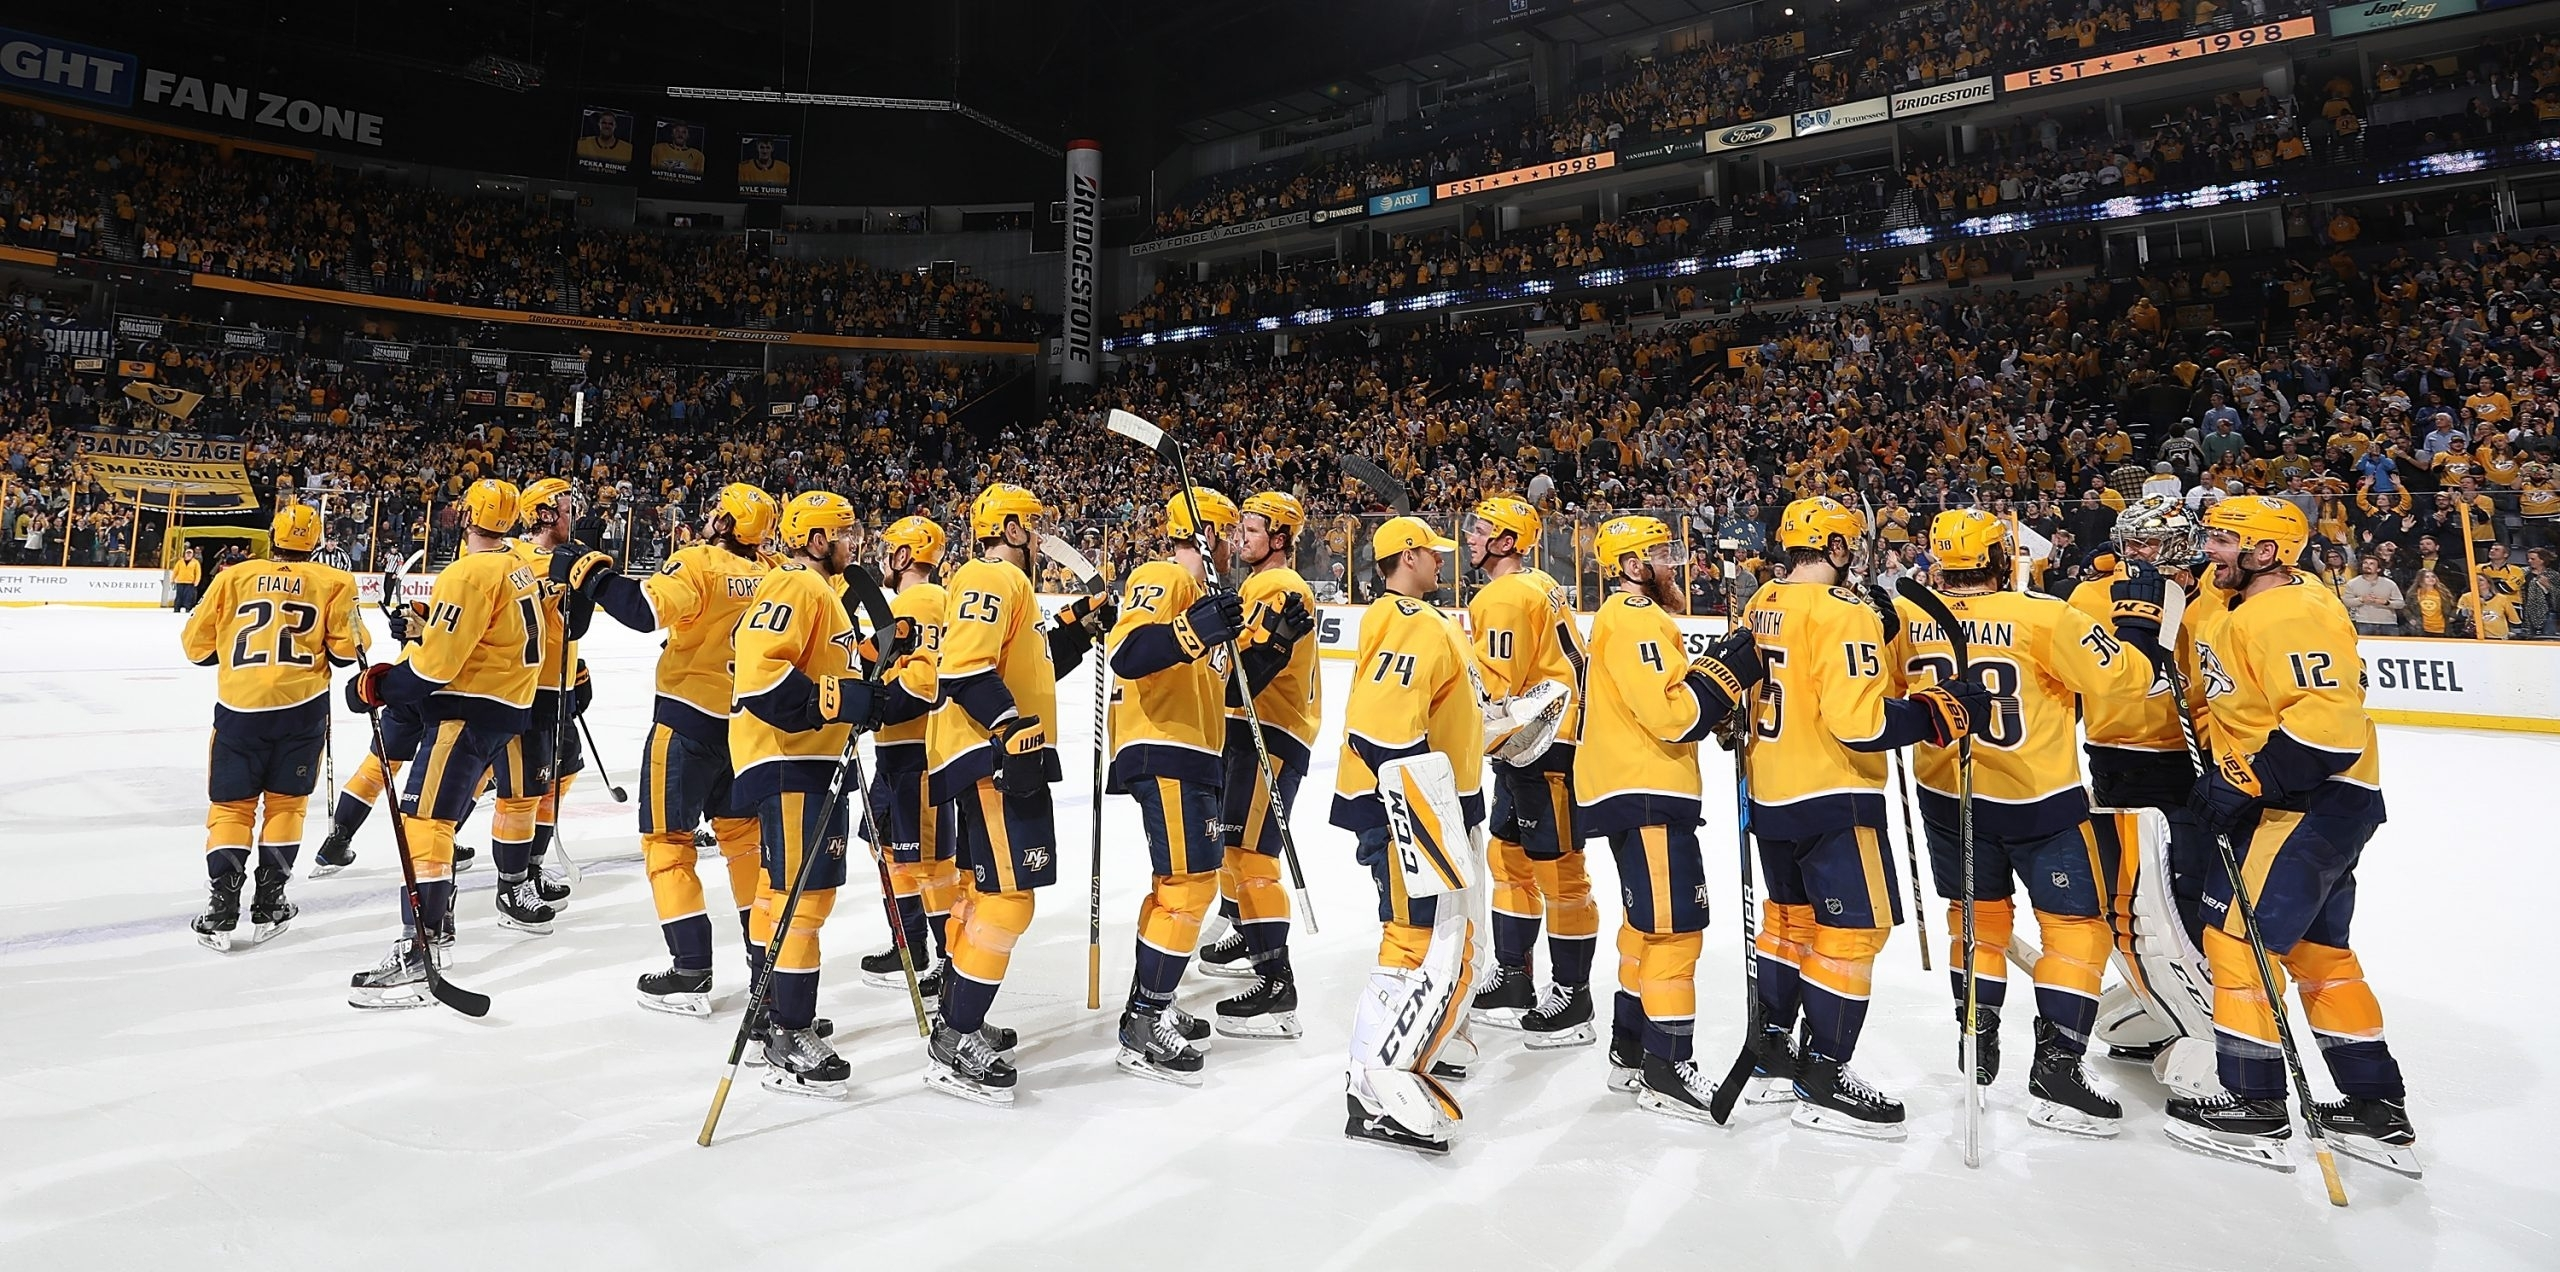 Nashville Predators Release 2018-2019 Season Schedule regarding Nashville Predators Schedule 2019 2020